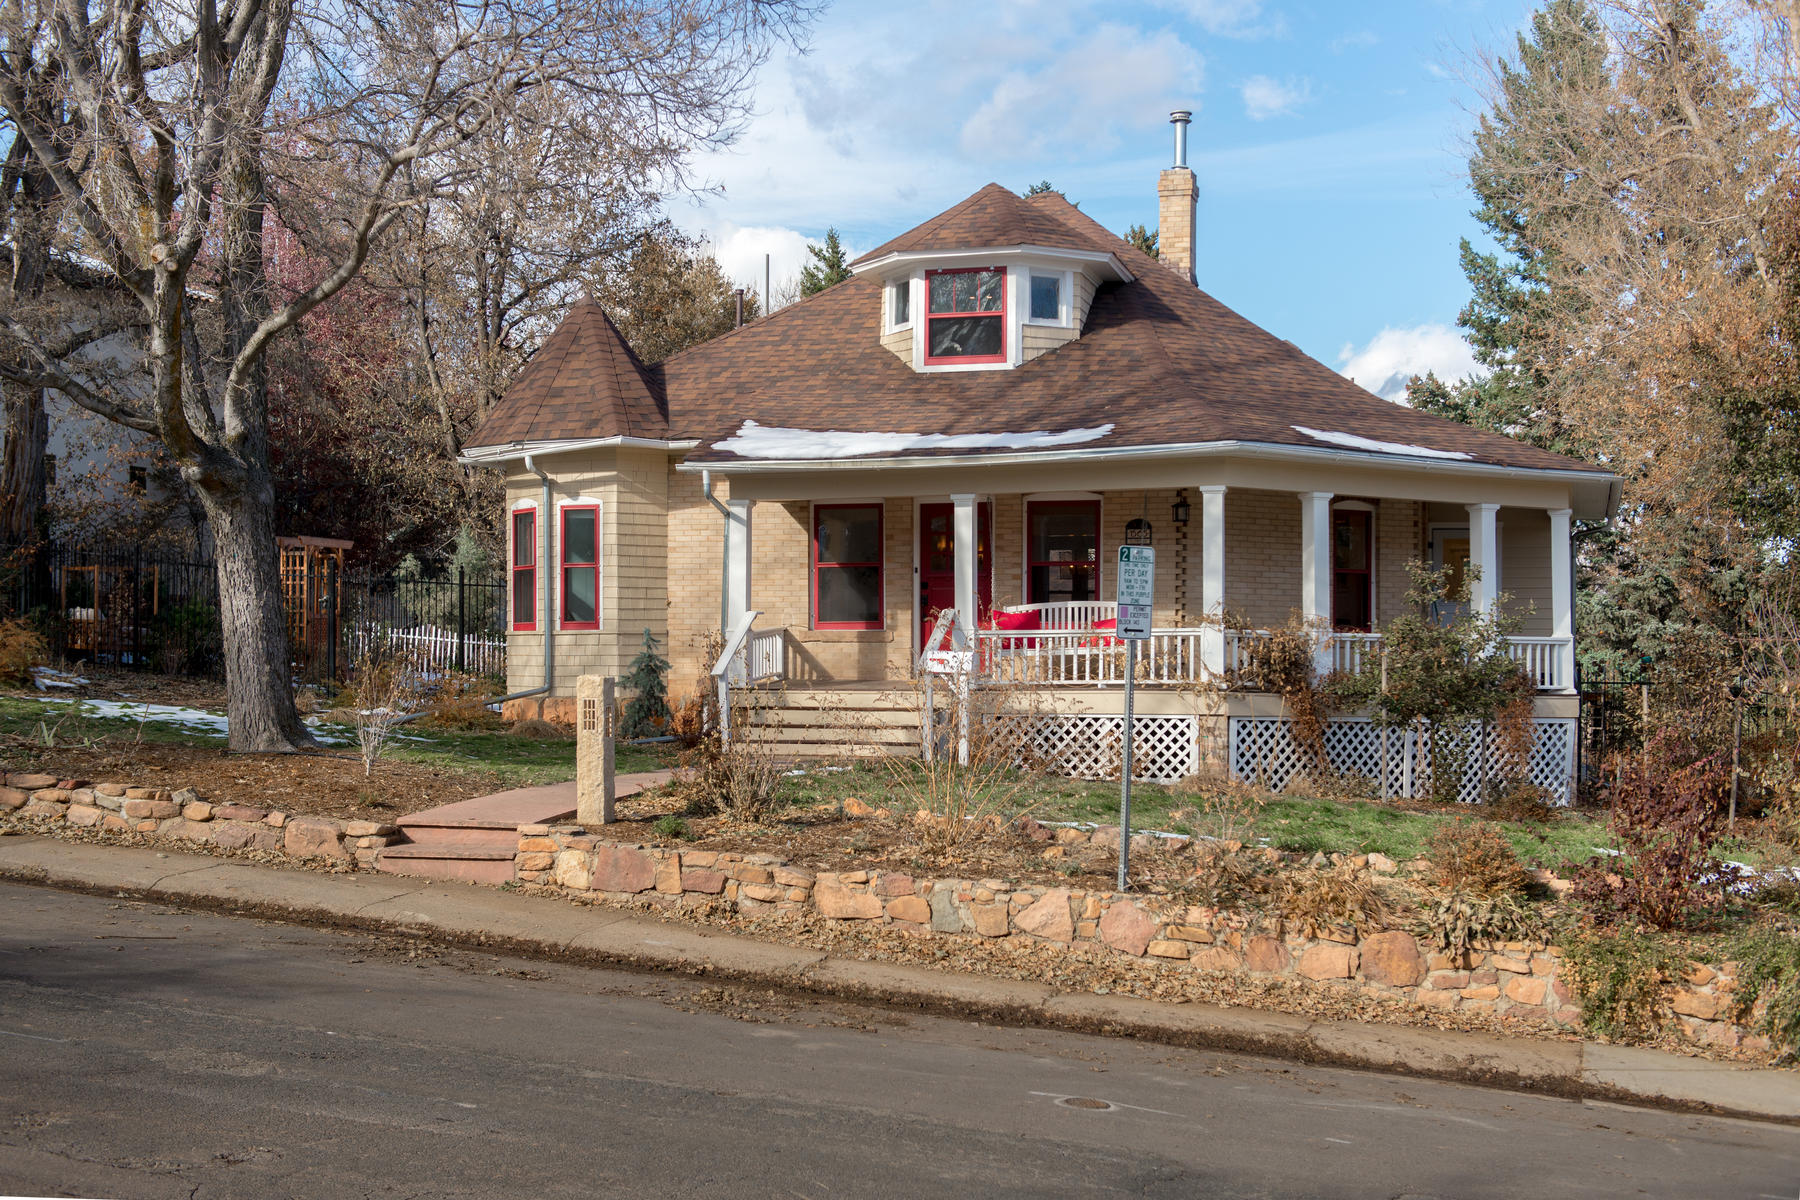 Single Family Homes for Sale at Boulder Bungalow Close To Chautauqua 1565 Columbine Ave Boulder, Colorado 80302 United States